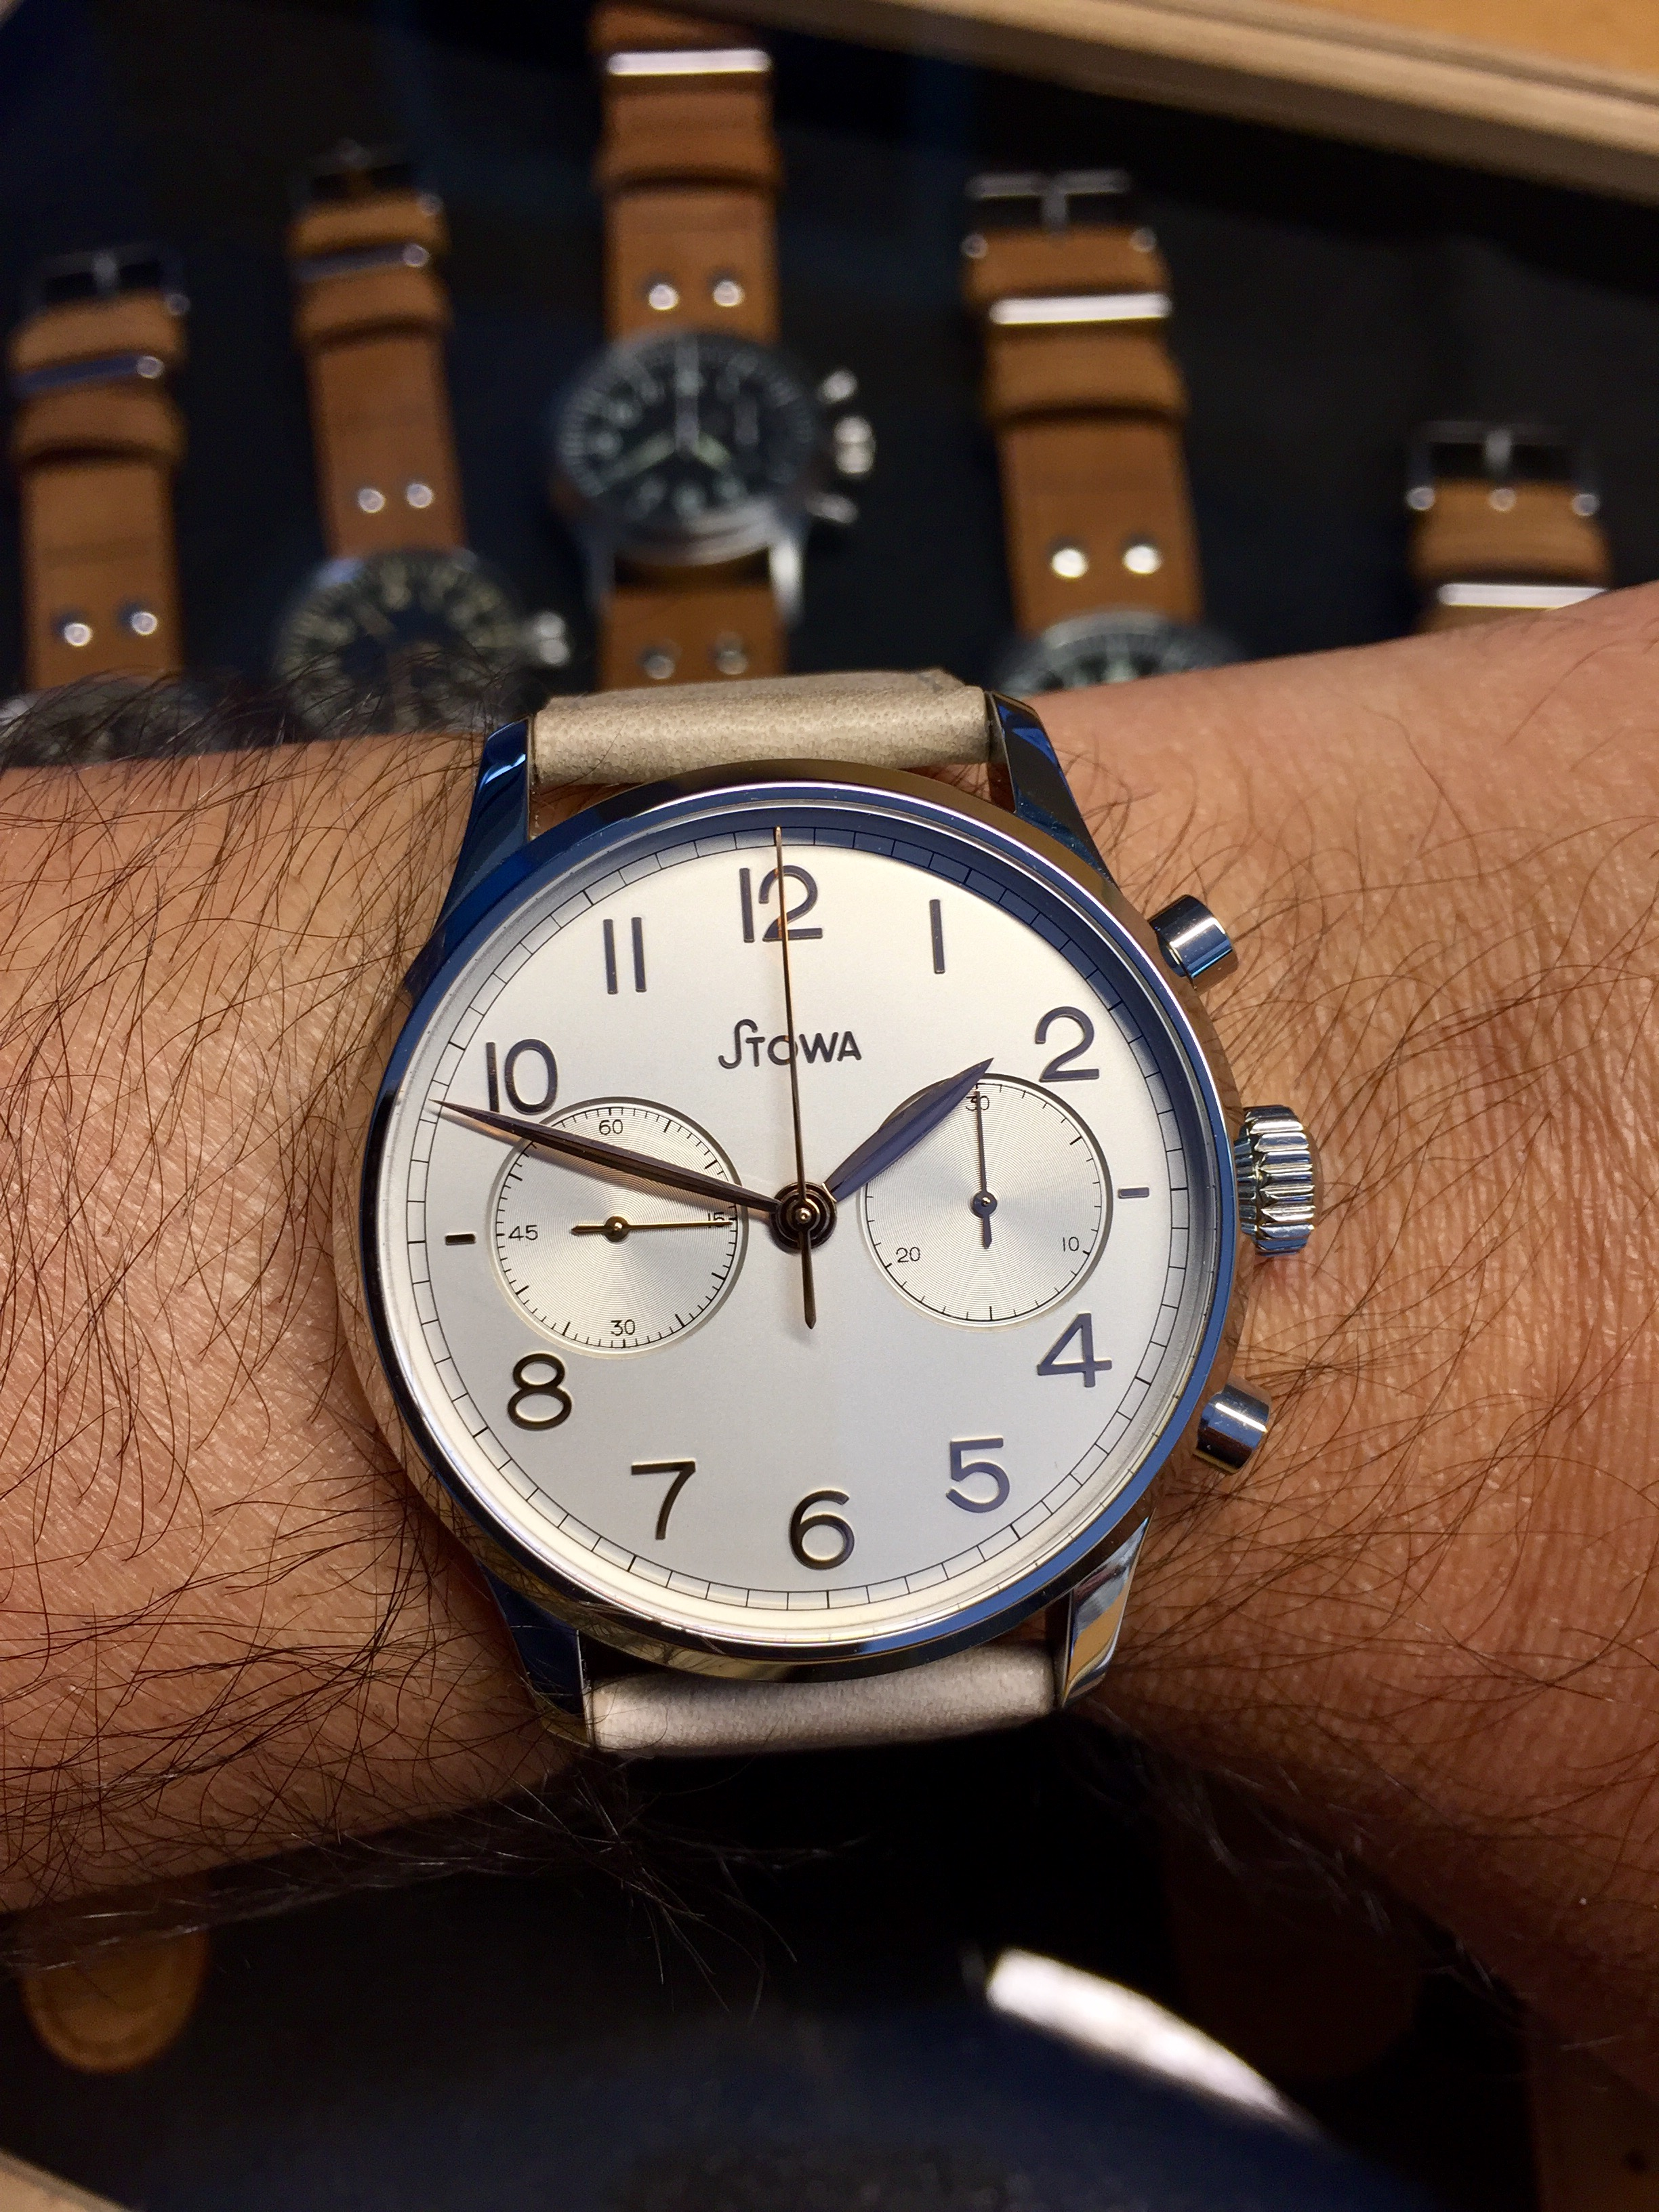 Like a true WIS, I placed an order for the 1938 chronograph - for the 2nd time